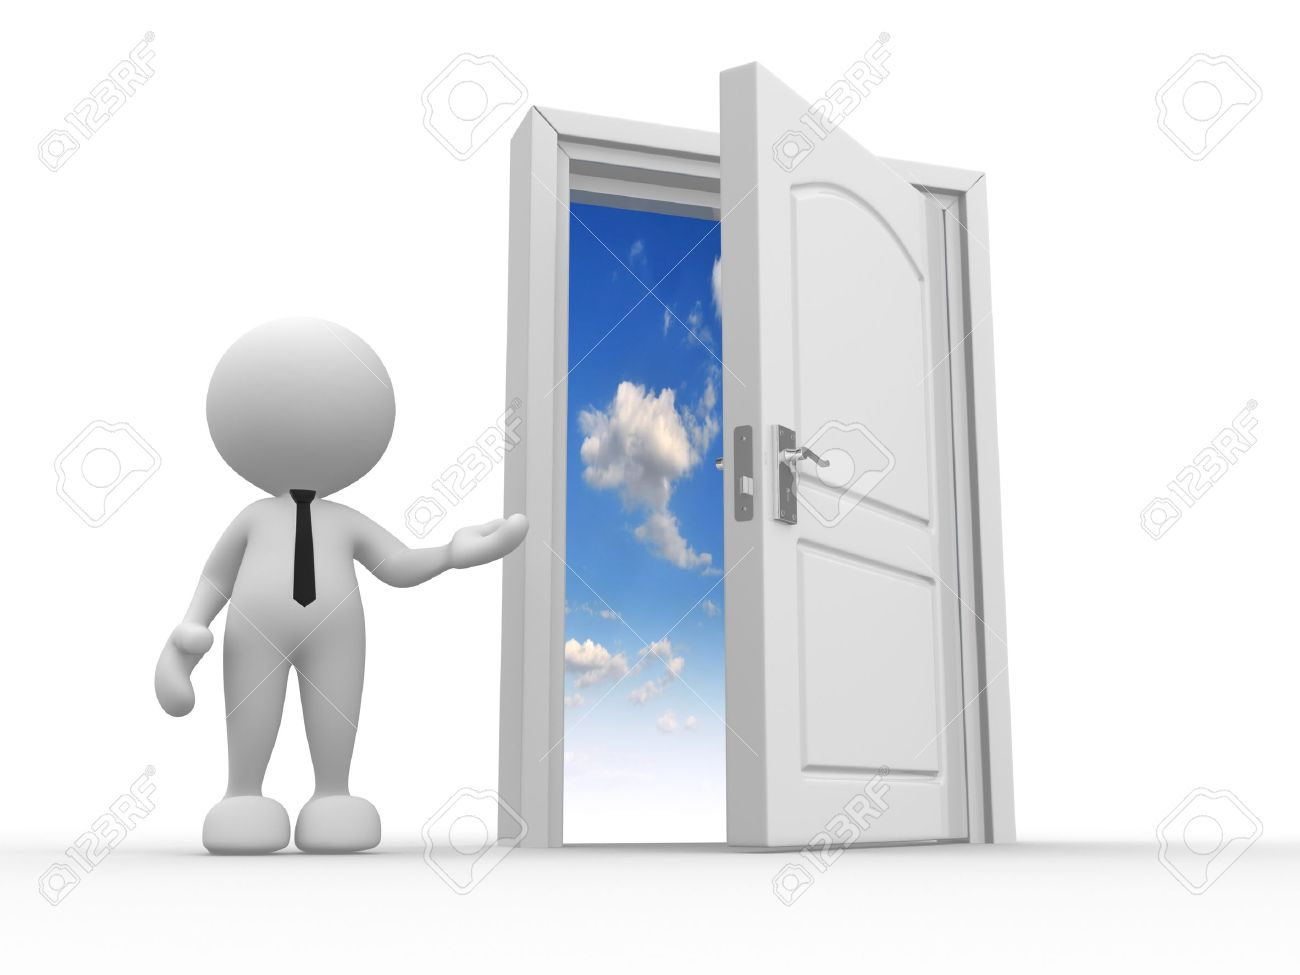 3d people - man person and a open door to heaven Stock Photo - 15017713  sc 1 st  123RF.com & 3d People - Man Person And A Open Door To Heaven Stock Photo ...